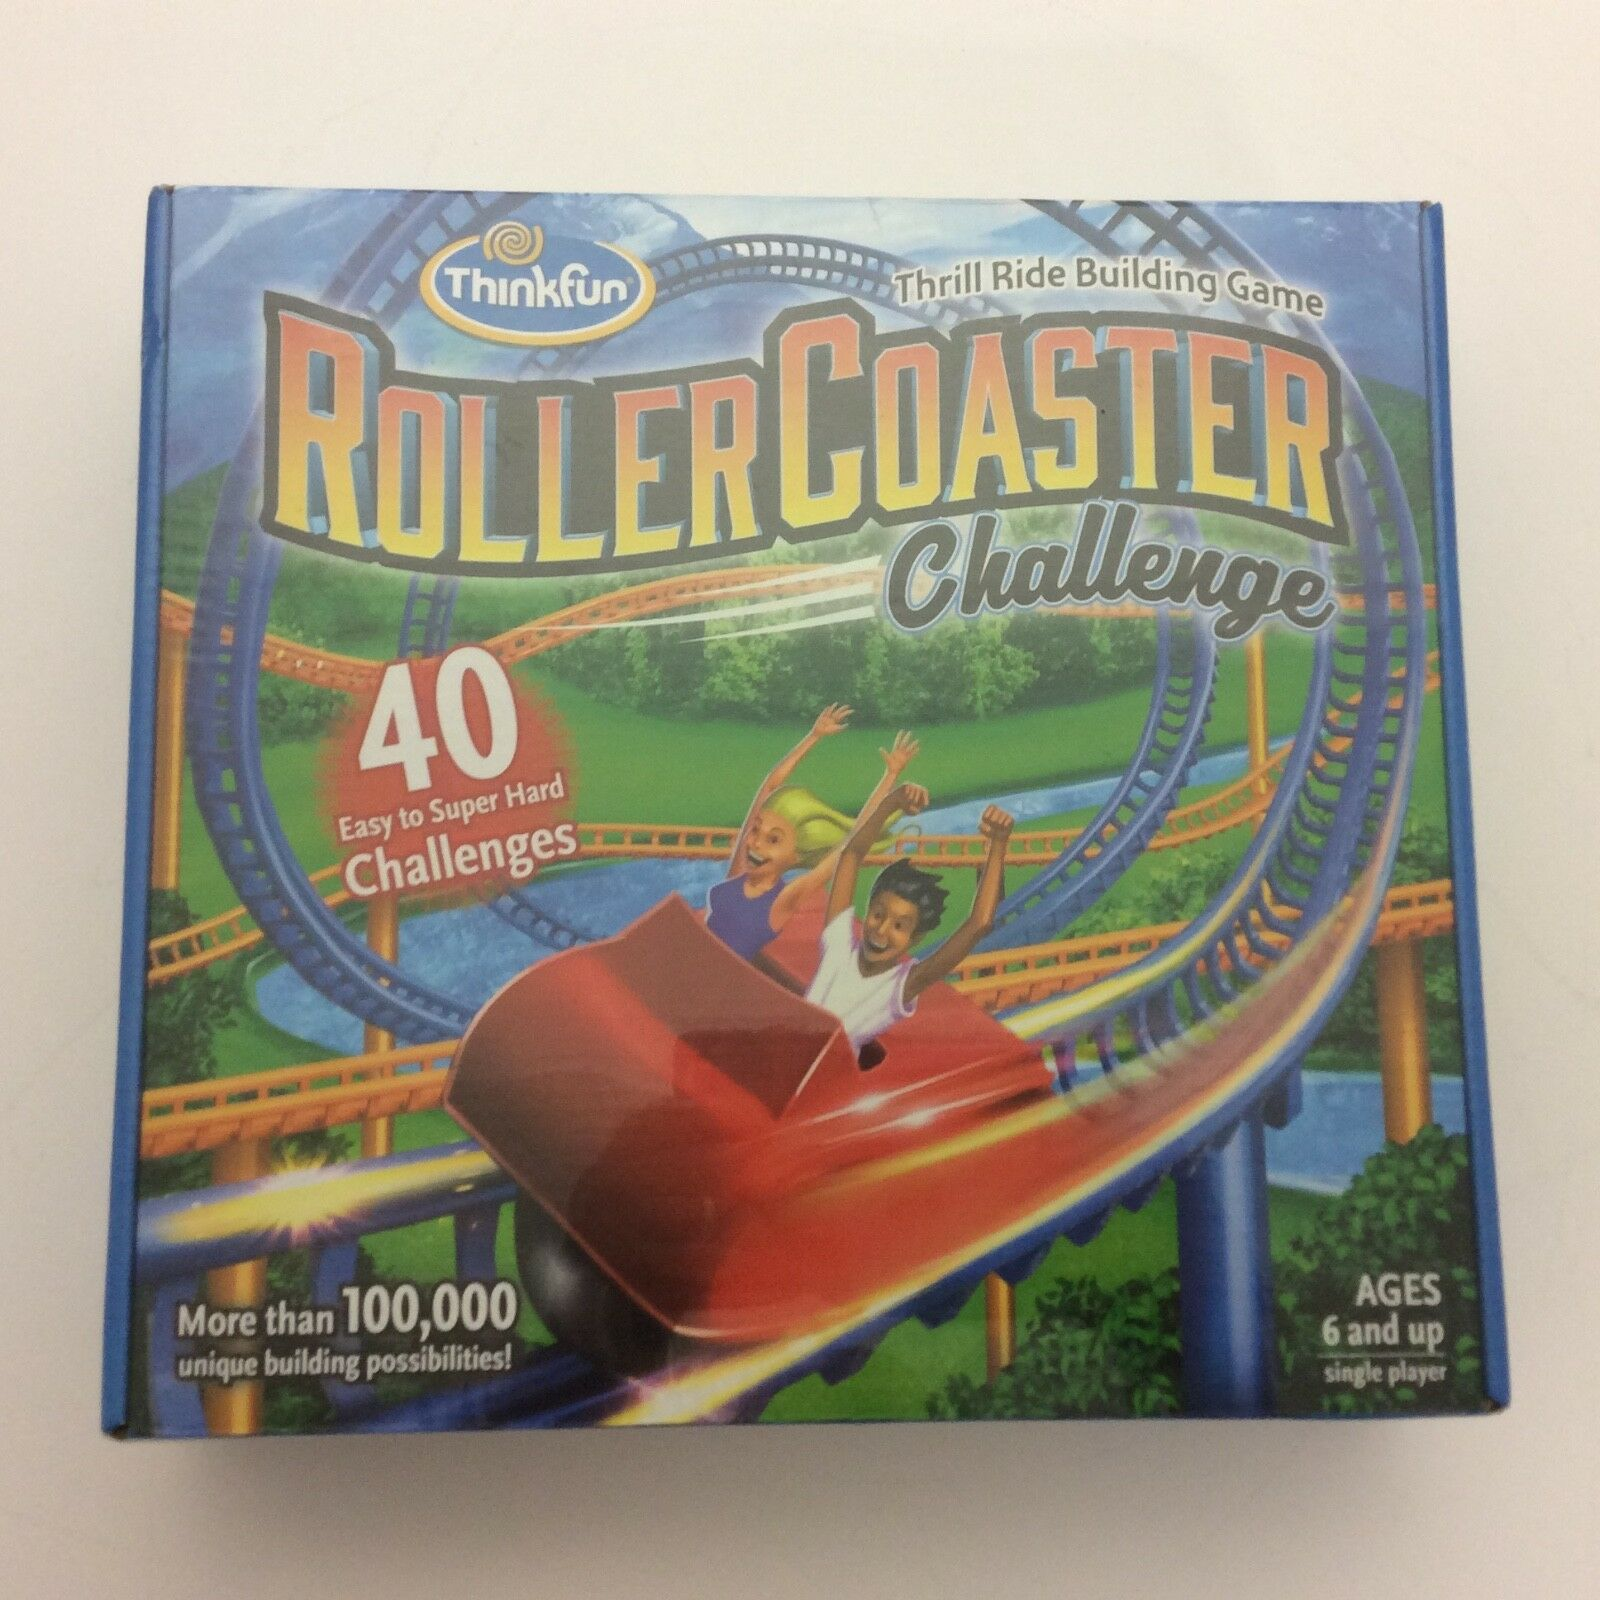 NEW Roller Coaster Challenge Logic And Building Game by Thinkfun, STEM Oriented